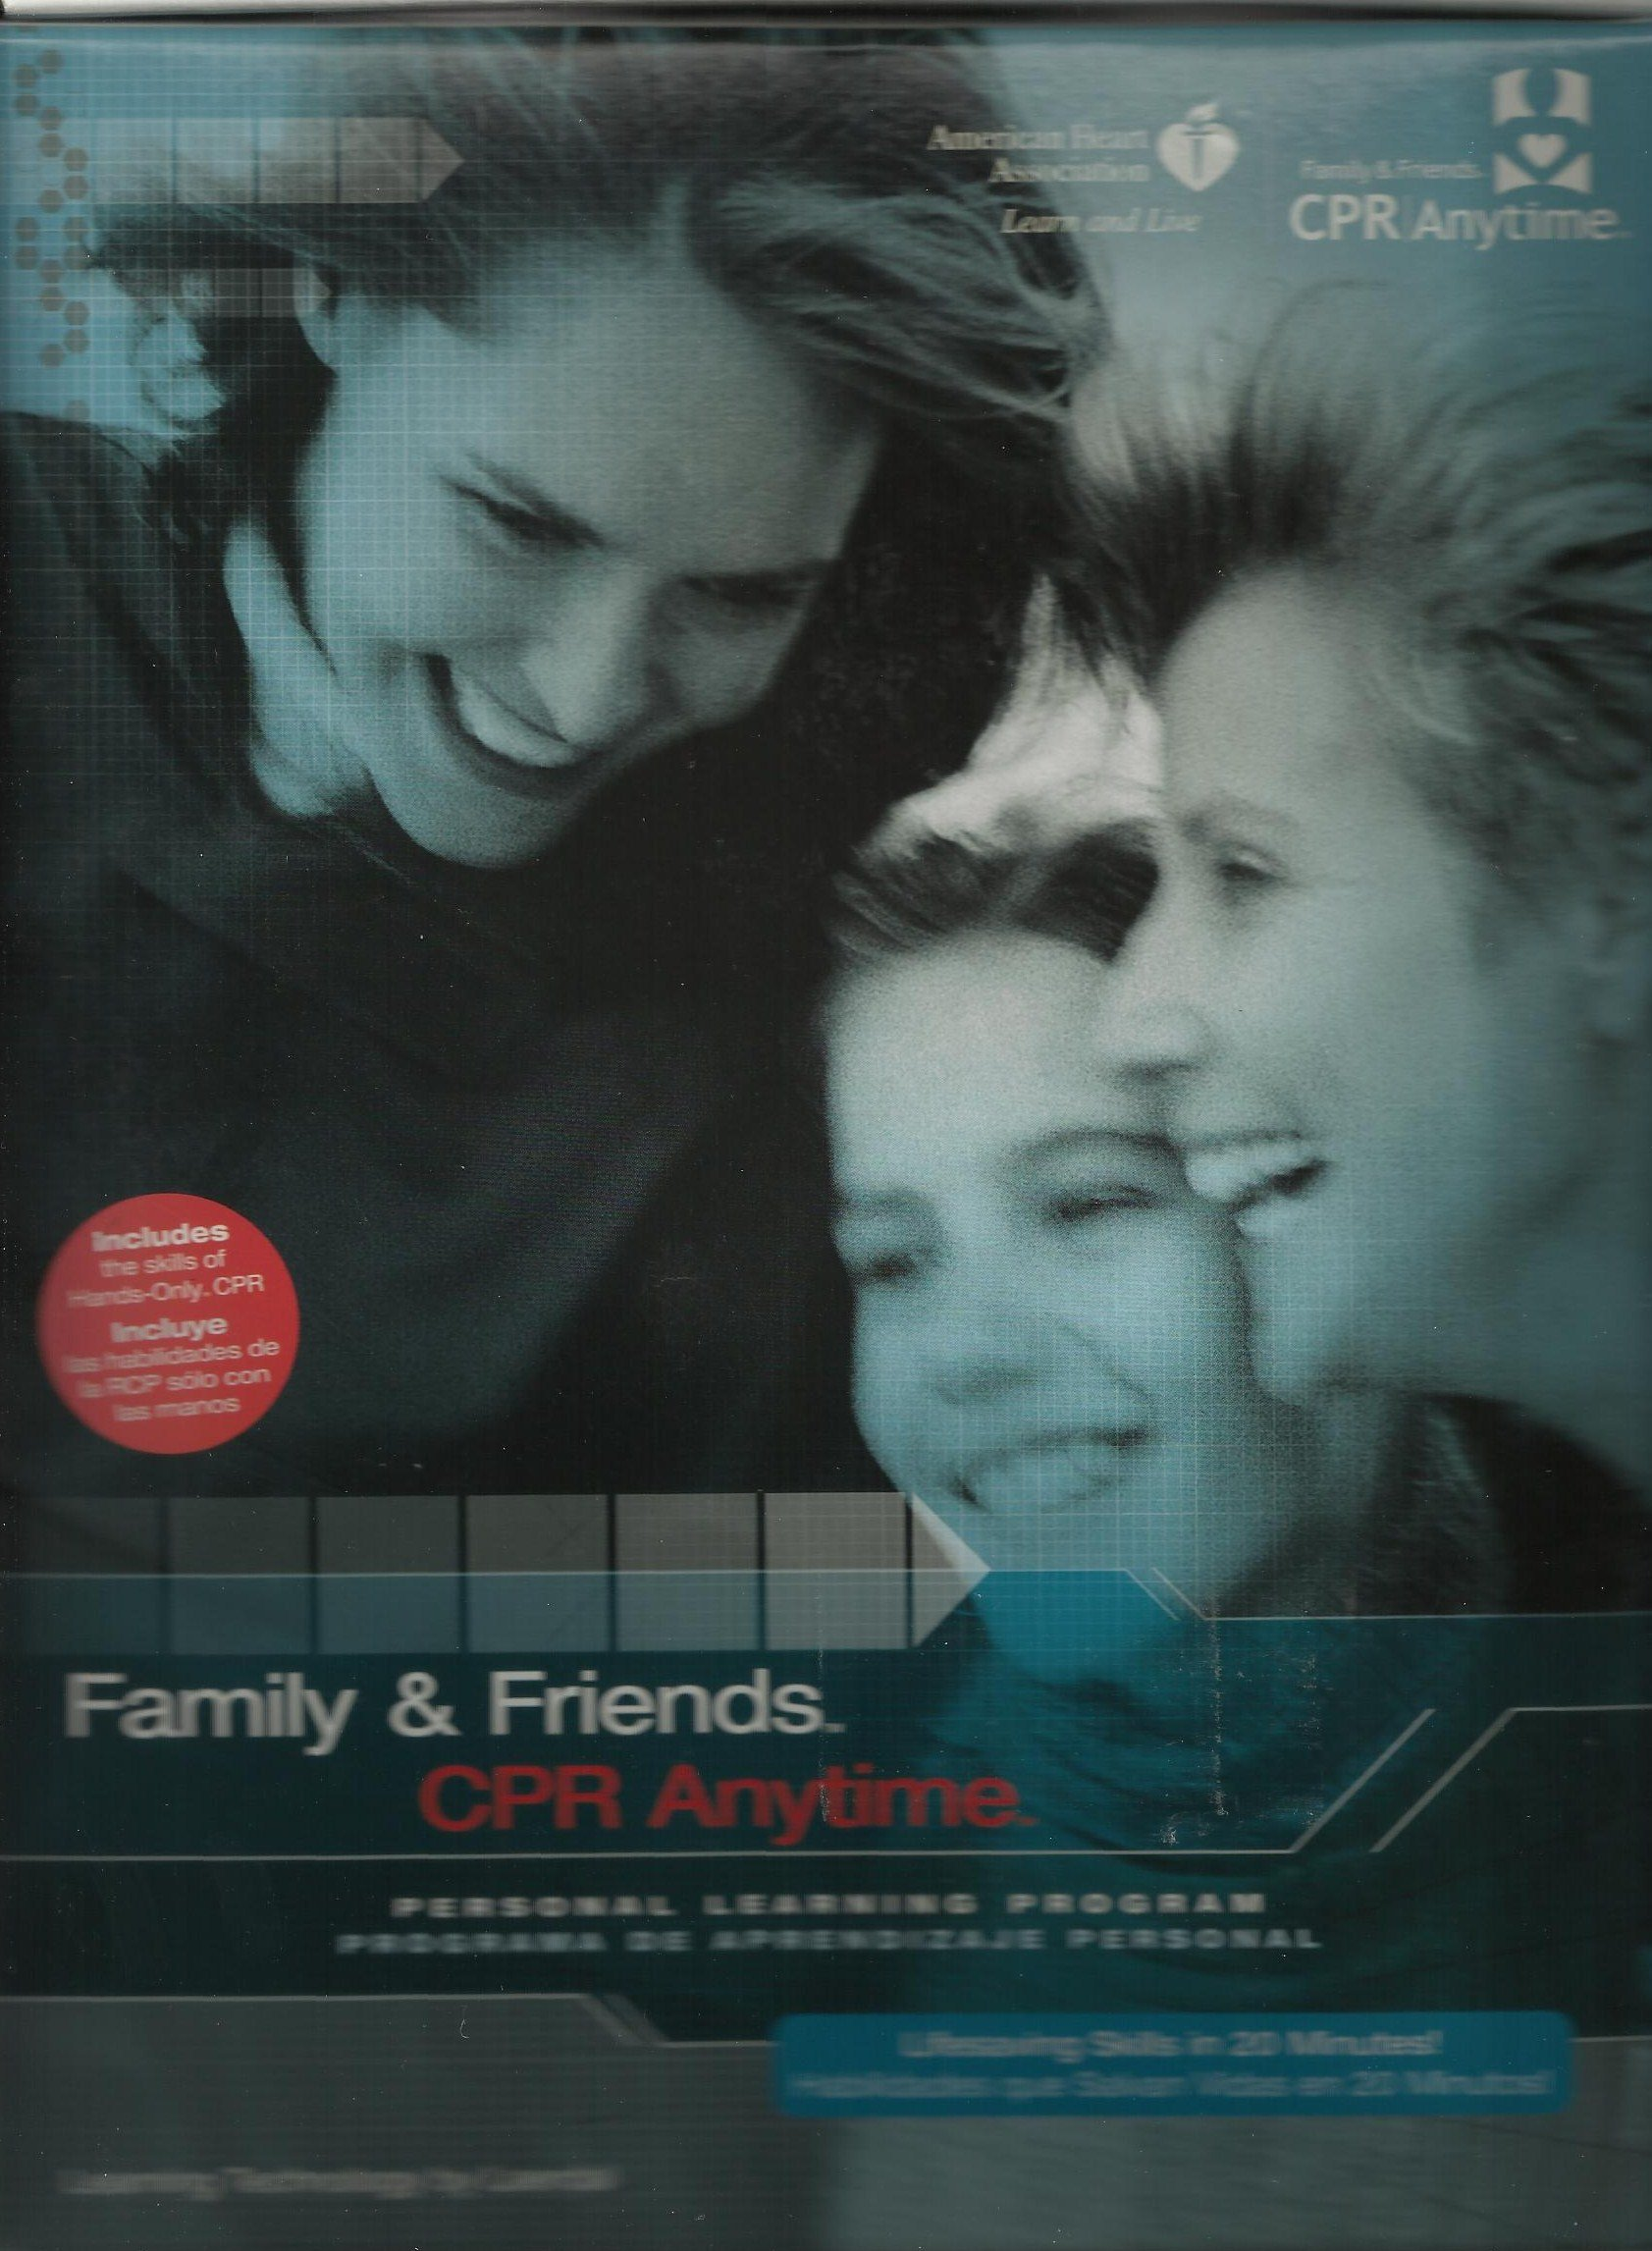 Family & Friends CPR Anytime: Personal Learning Program Kit